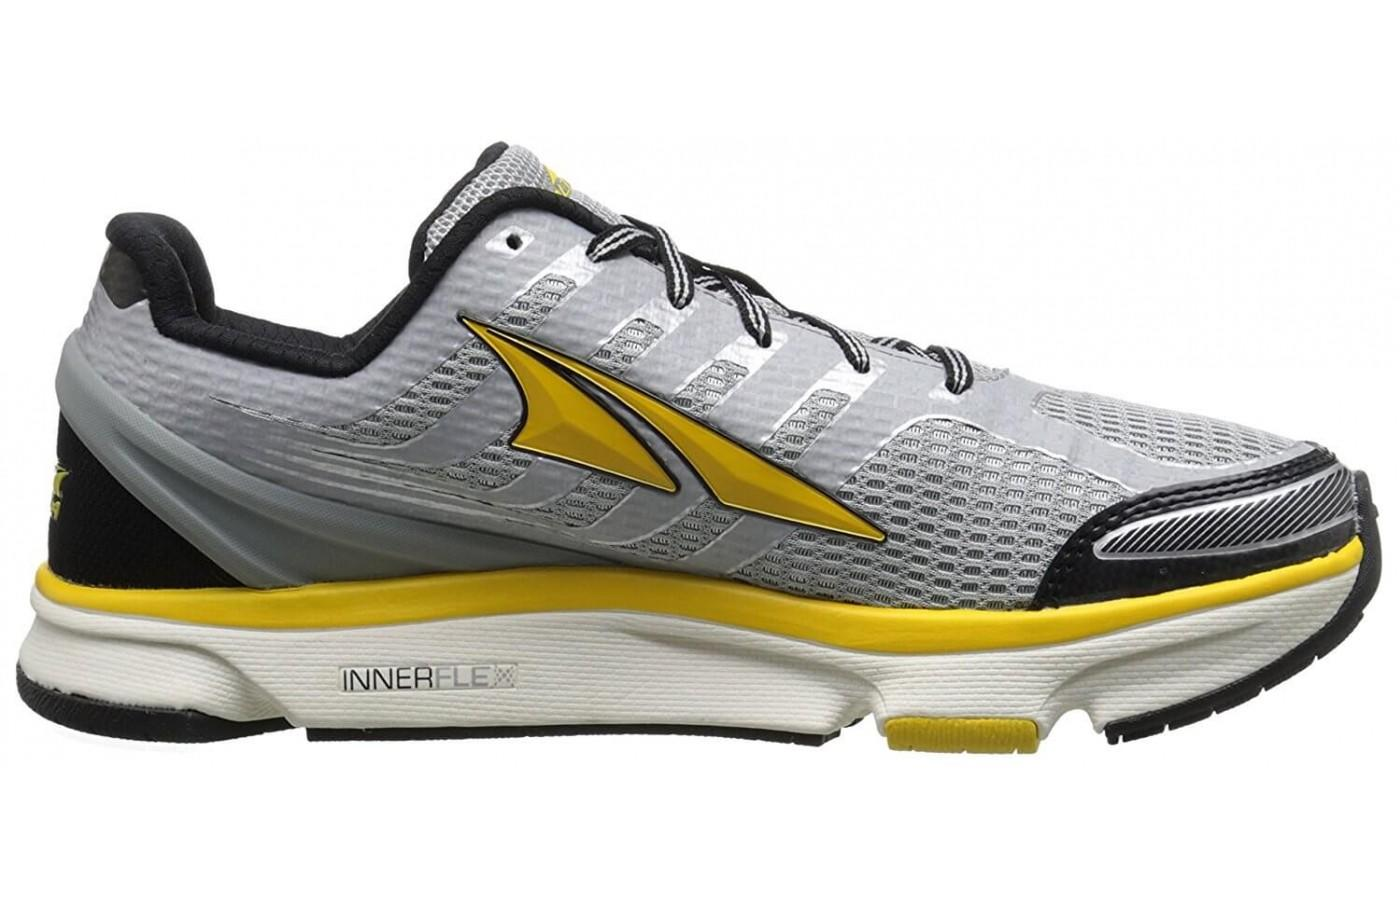 Altra Provision 2.5 has an attractive profile